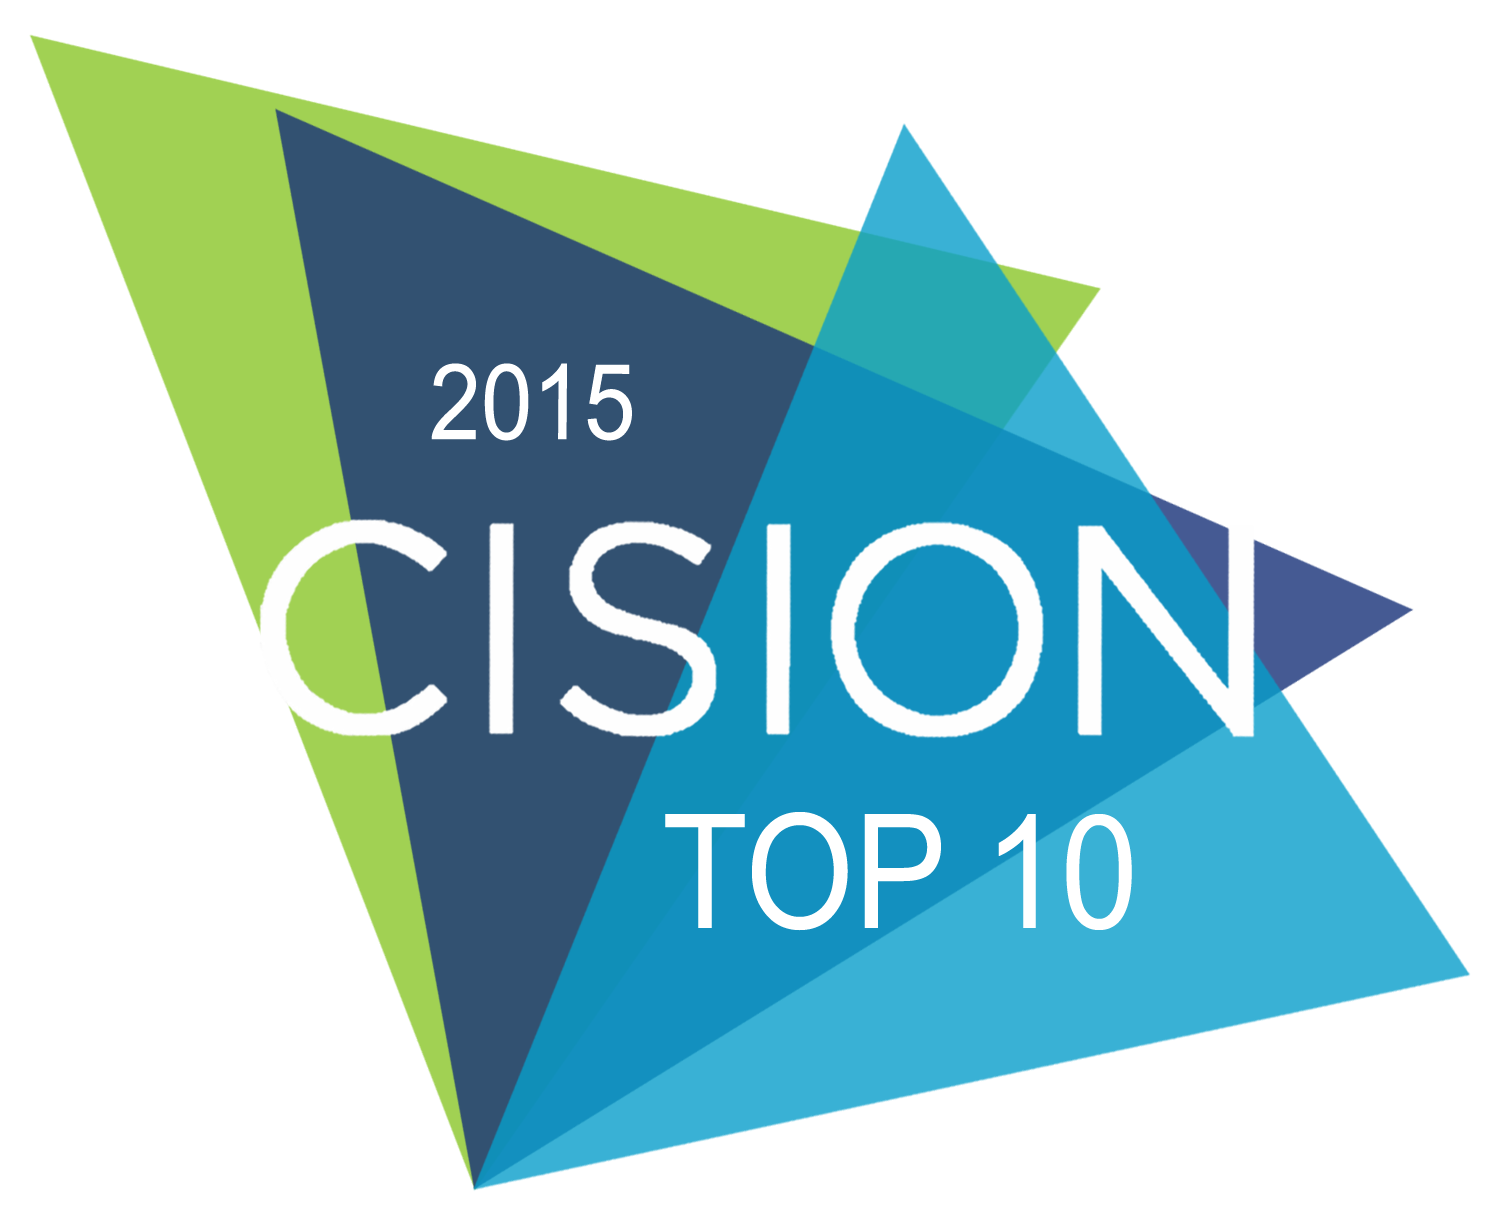 No.2 in Cision's Top 10 UK Art Blogs